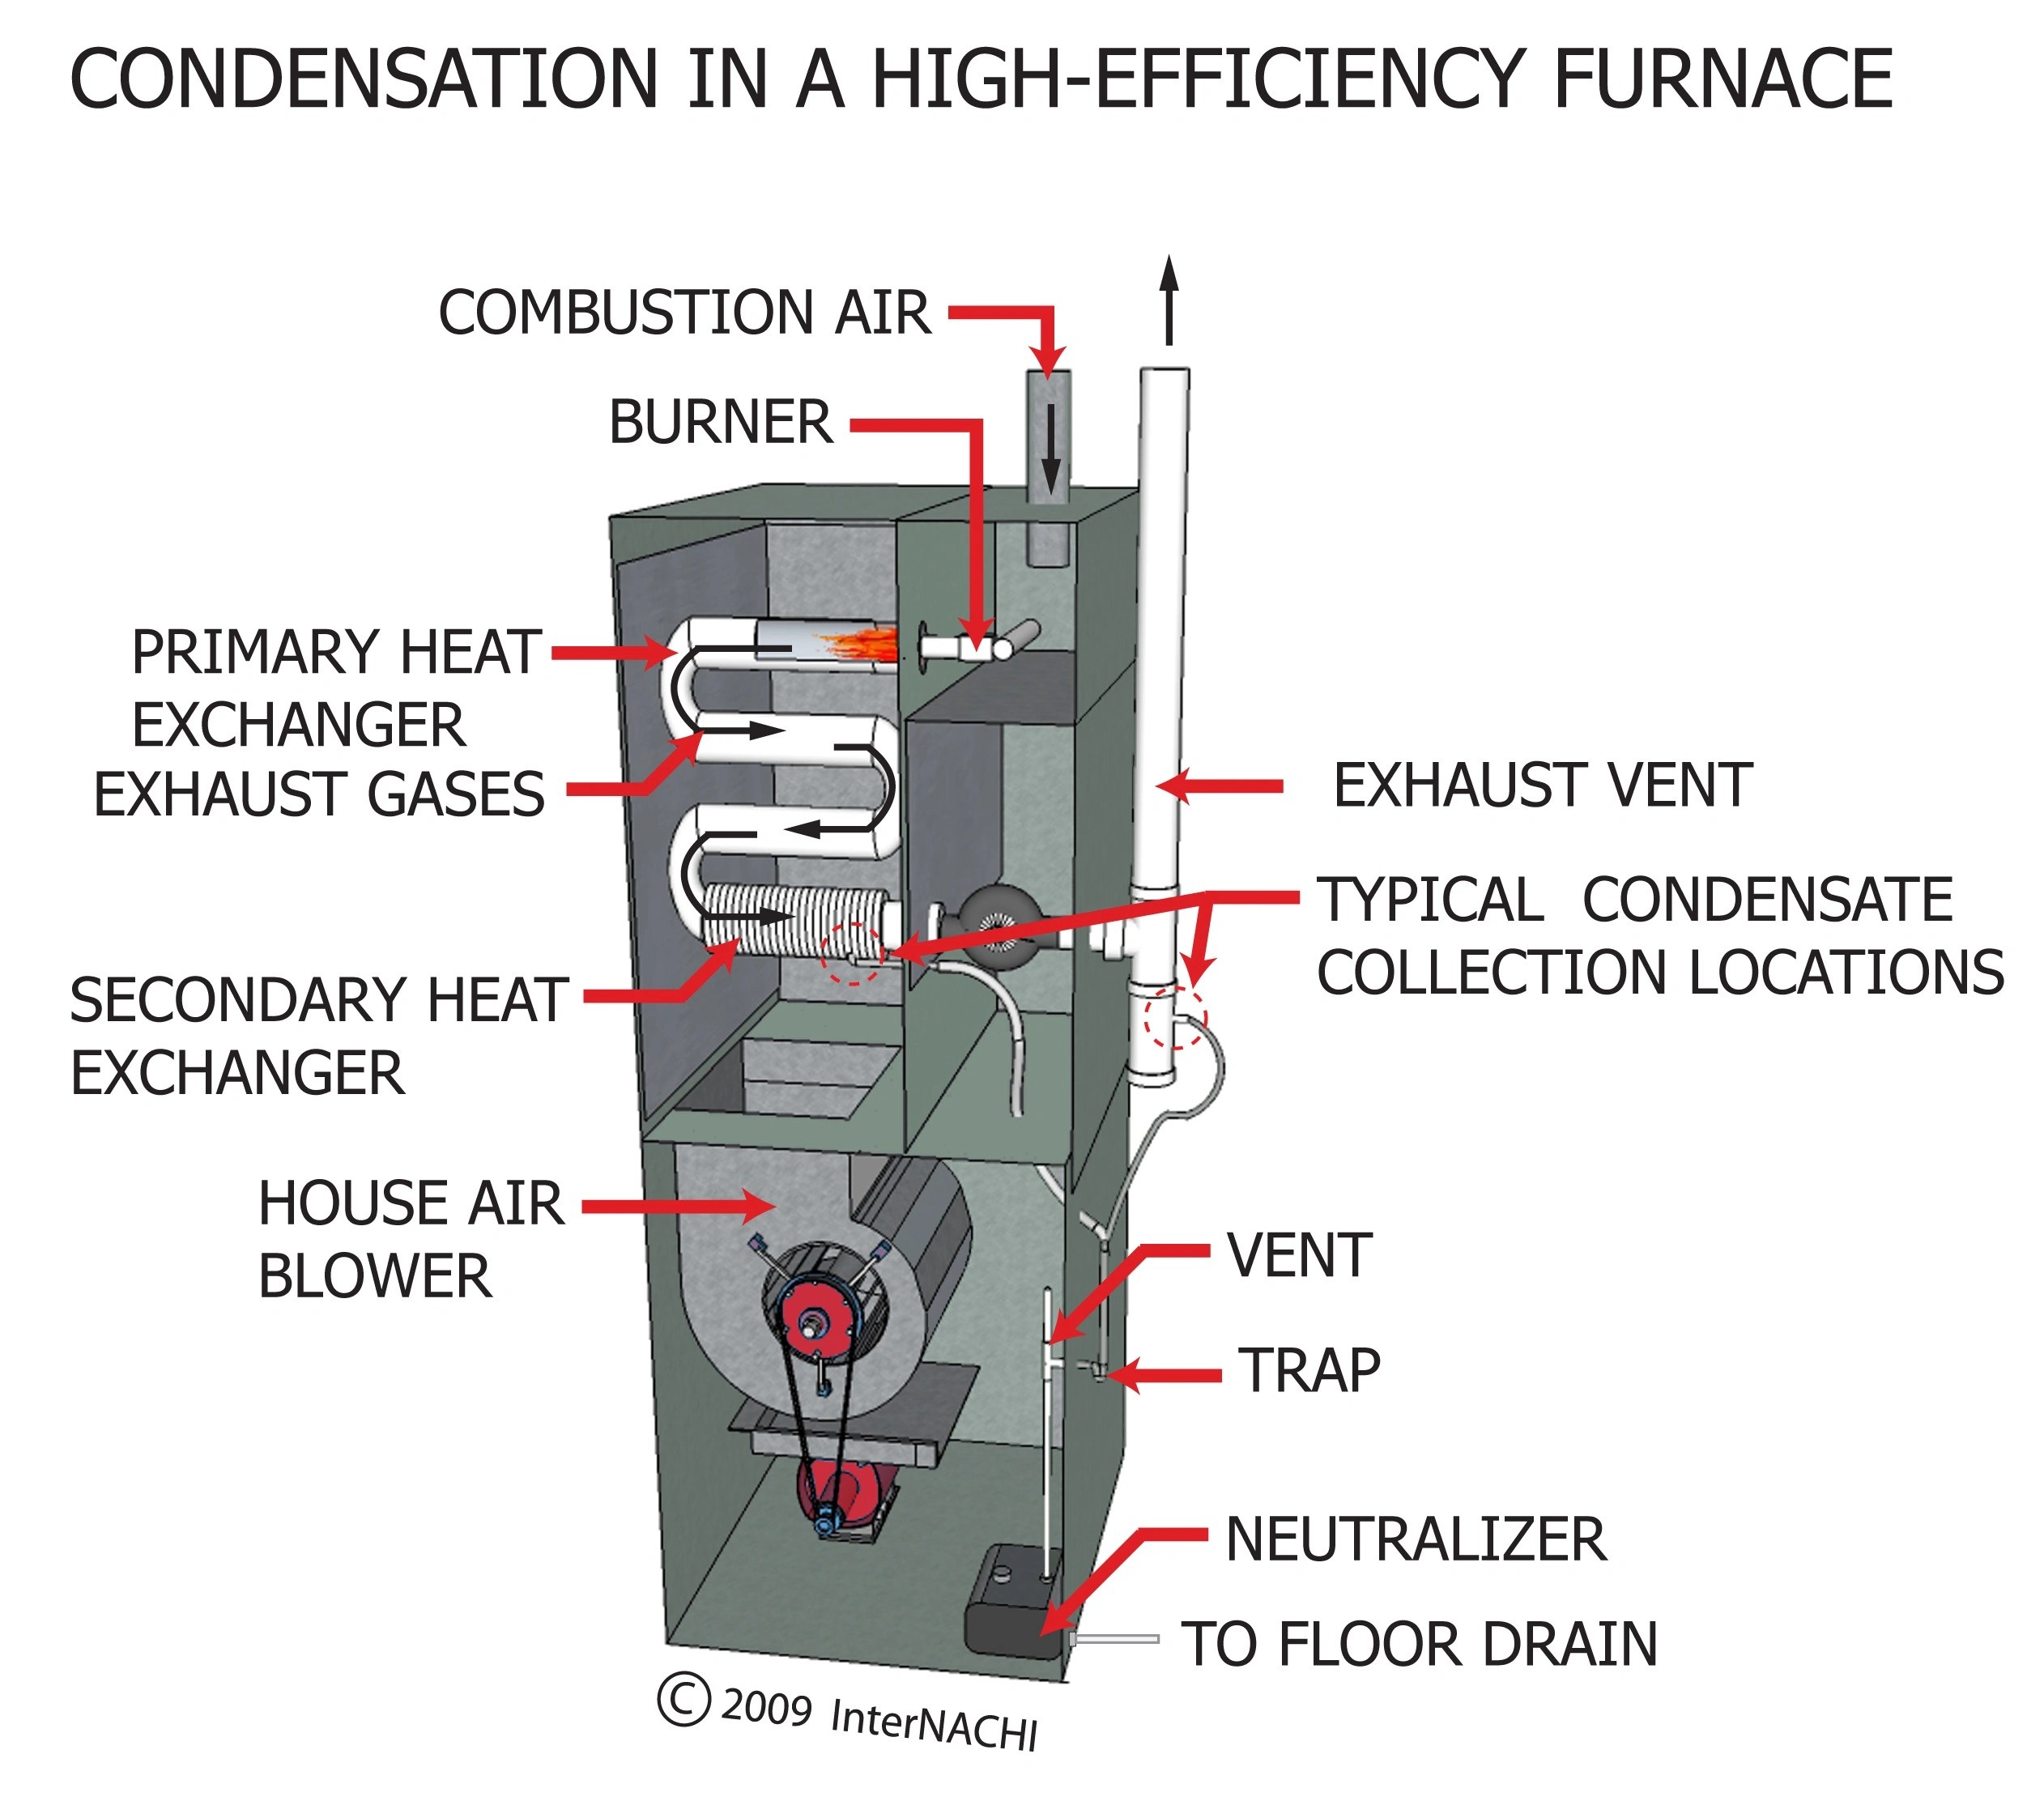 high efficiency furnace venting diagram dayton 1 hp electric motor wiring index of gallery images hvac heating